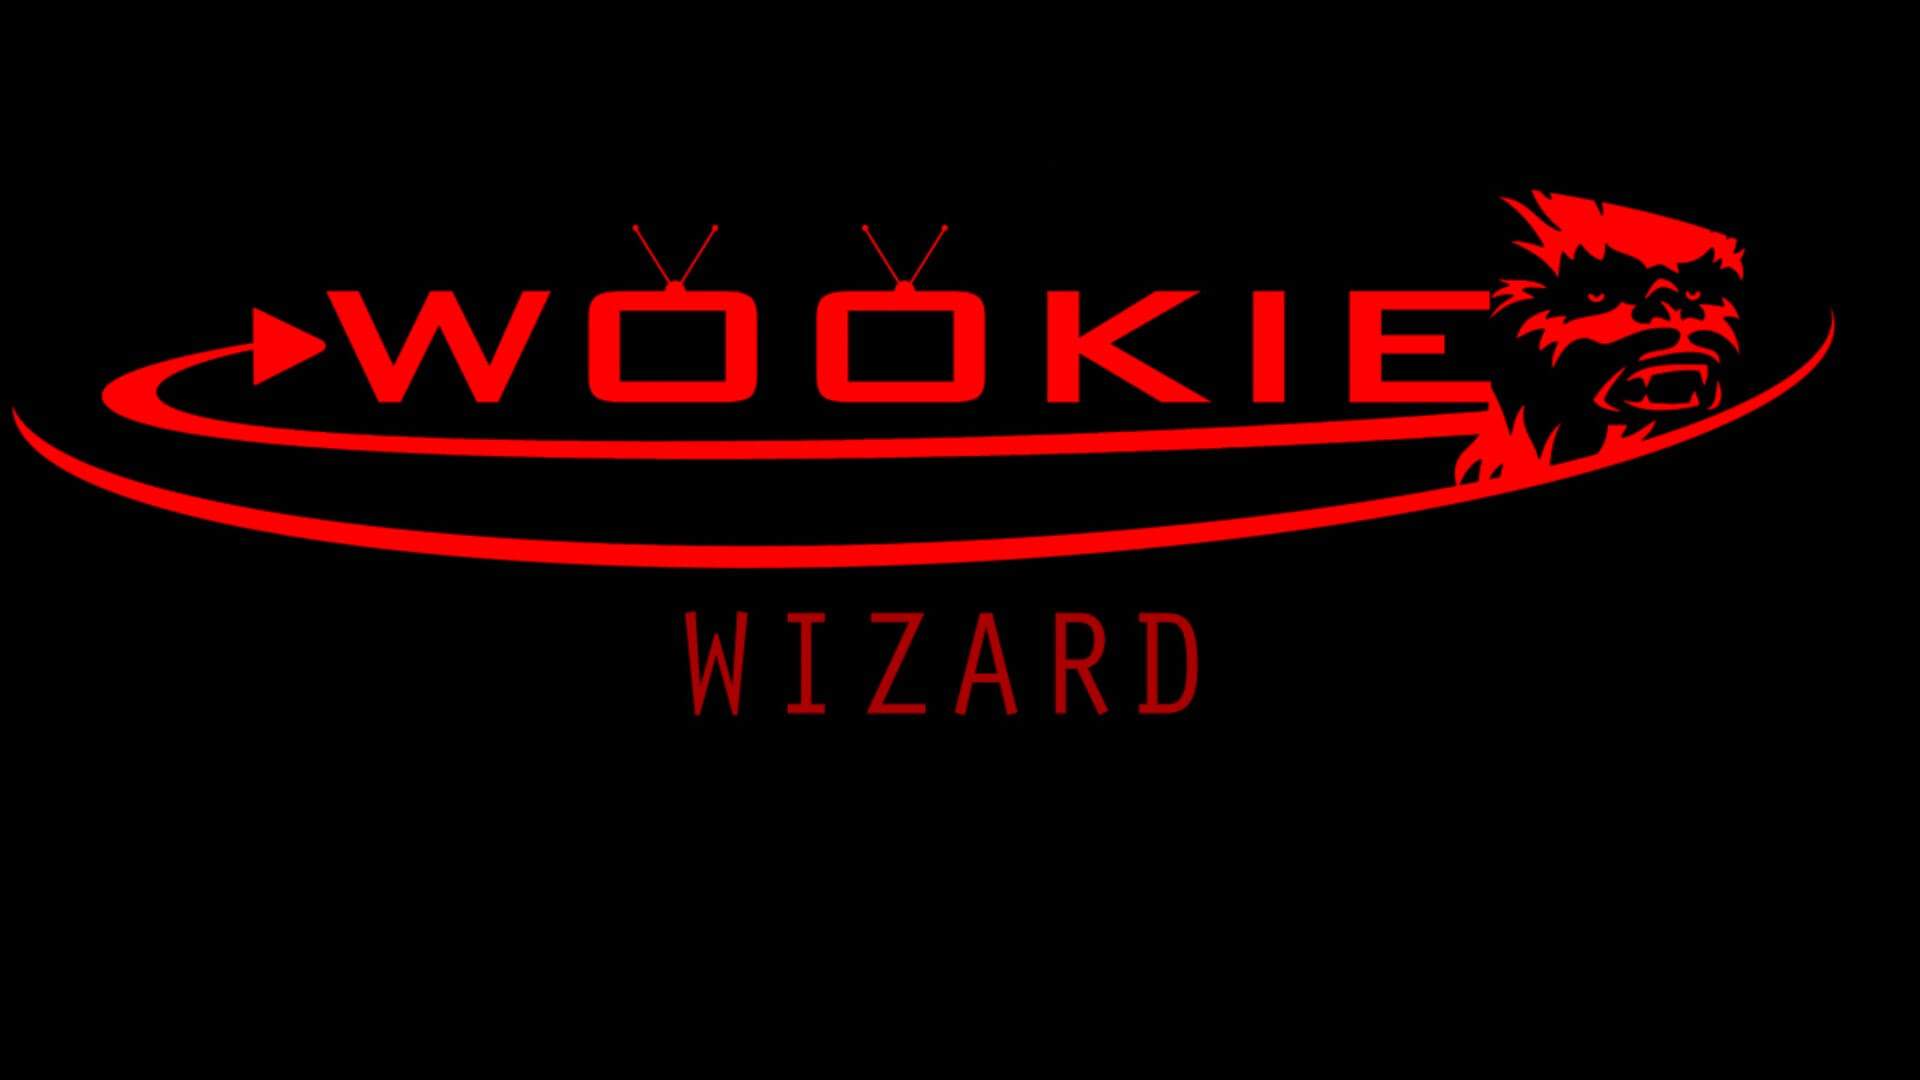 How to Install Wookie Wizard on Kodi 18.2 Leia (Ares Wizard Alternative)